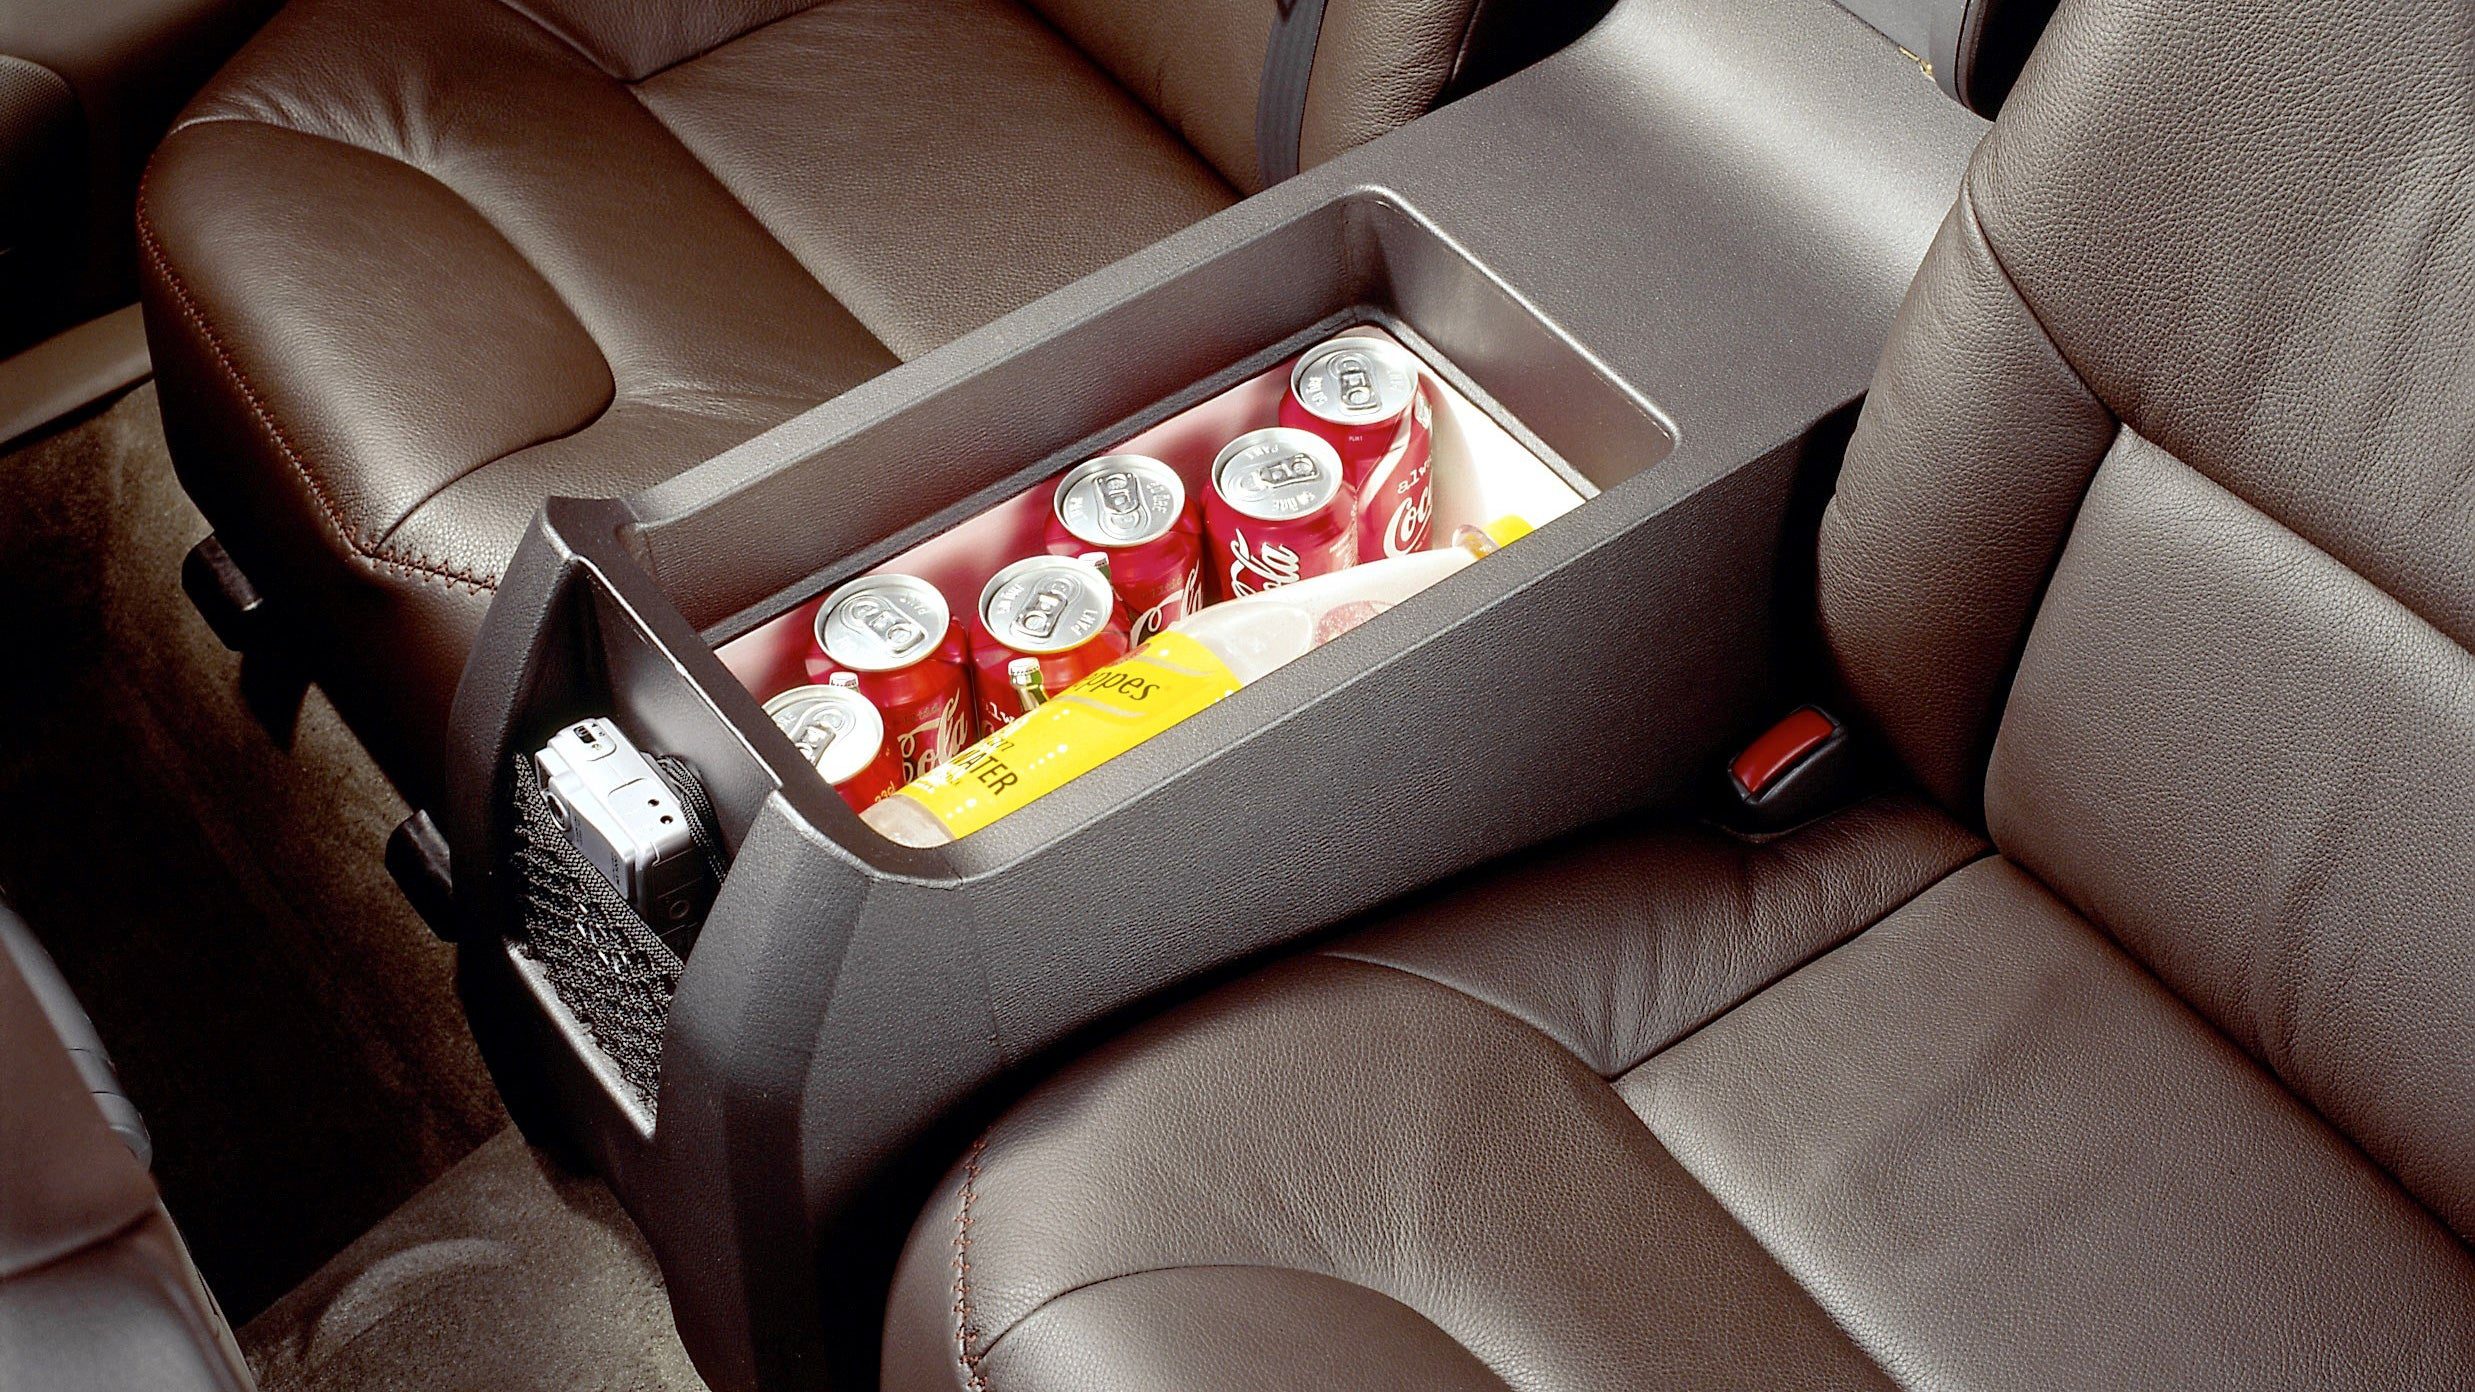 Report: The Best Way To Combat Viruses On Car Interior Surfaces Is Alcohol